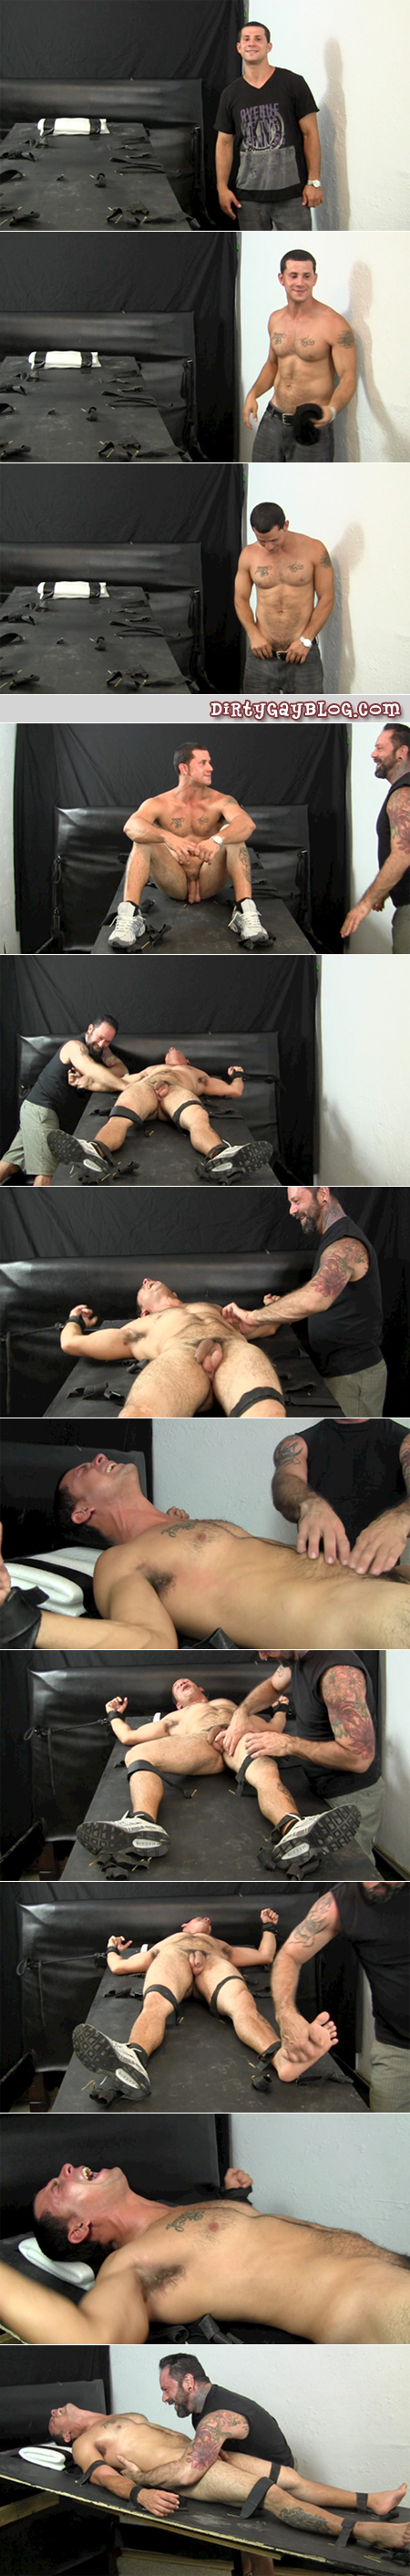 Hairy Daddy ties up a muscular Latino in gay bondage and tickle tortures him.